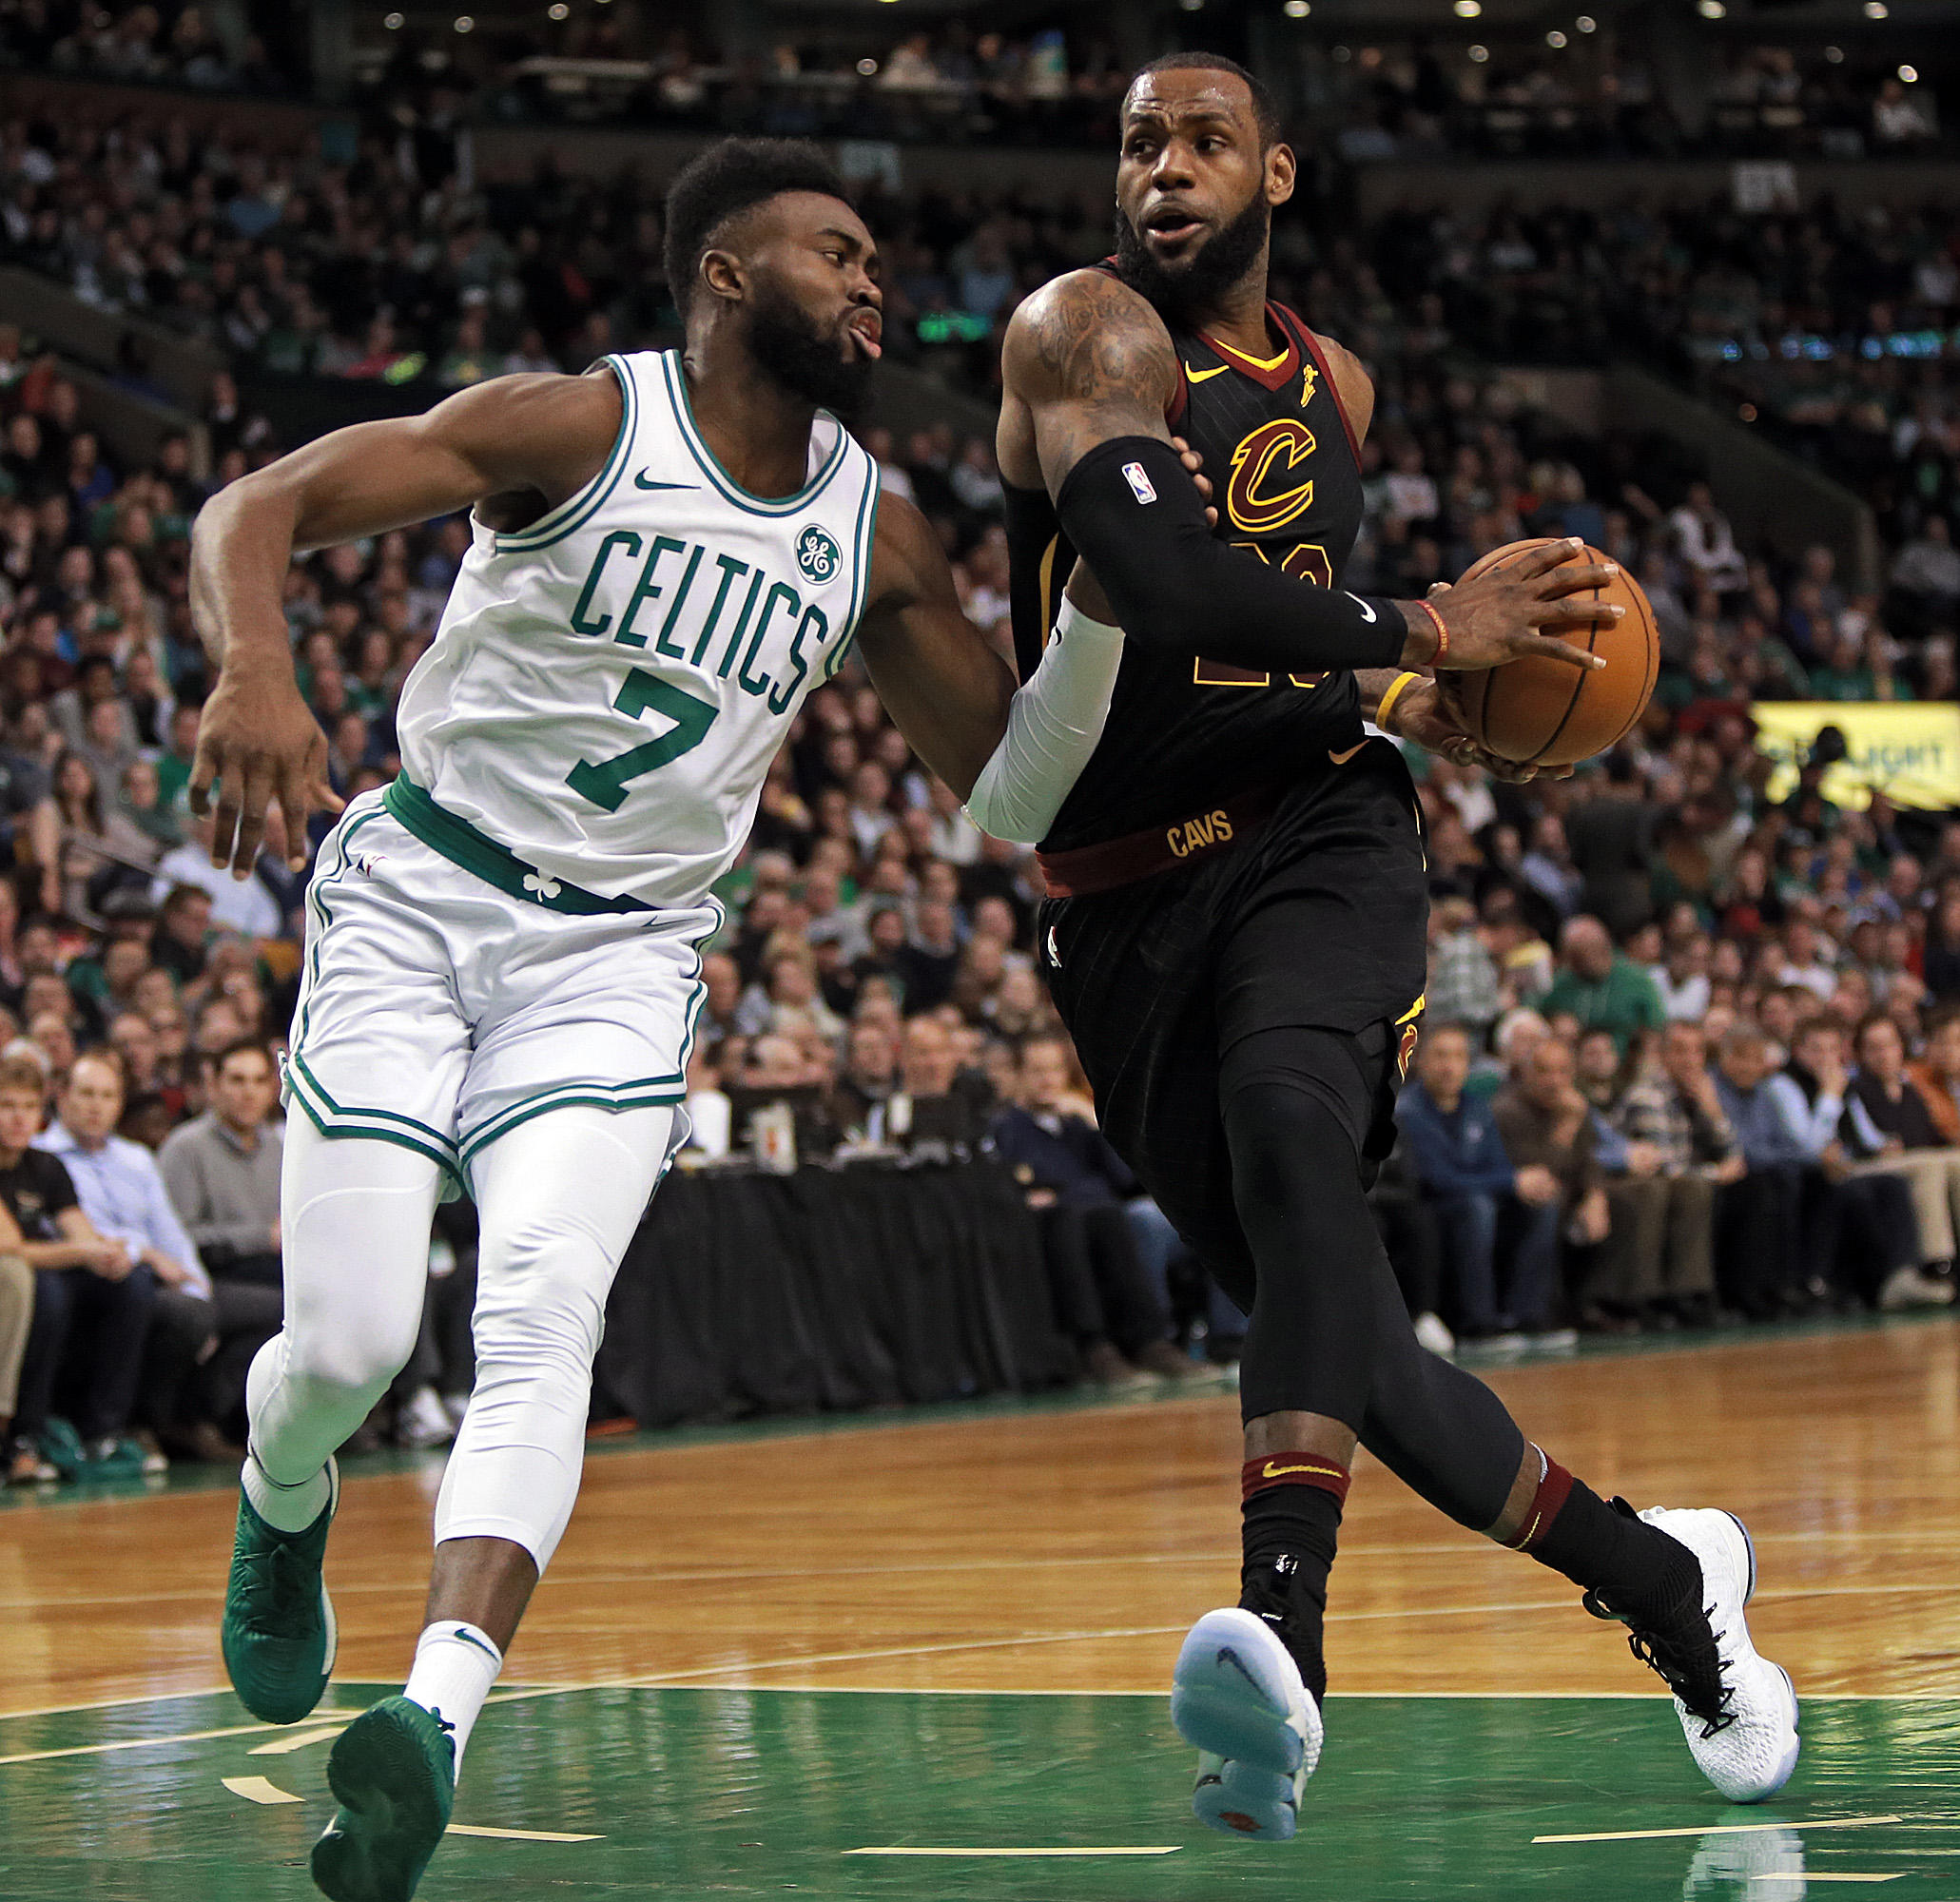 Celtics Warriors Live Stream Free Online: LeBron Is The Undisputed G.O.A.T. If He Wins The 2018 NBA